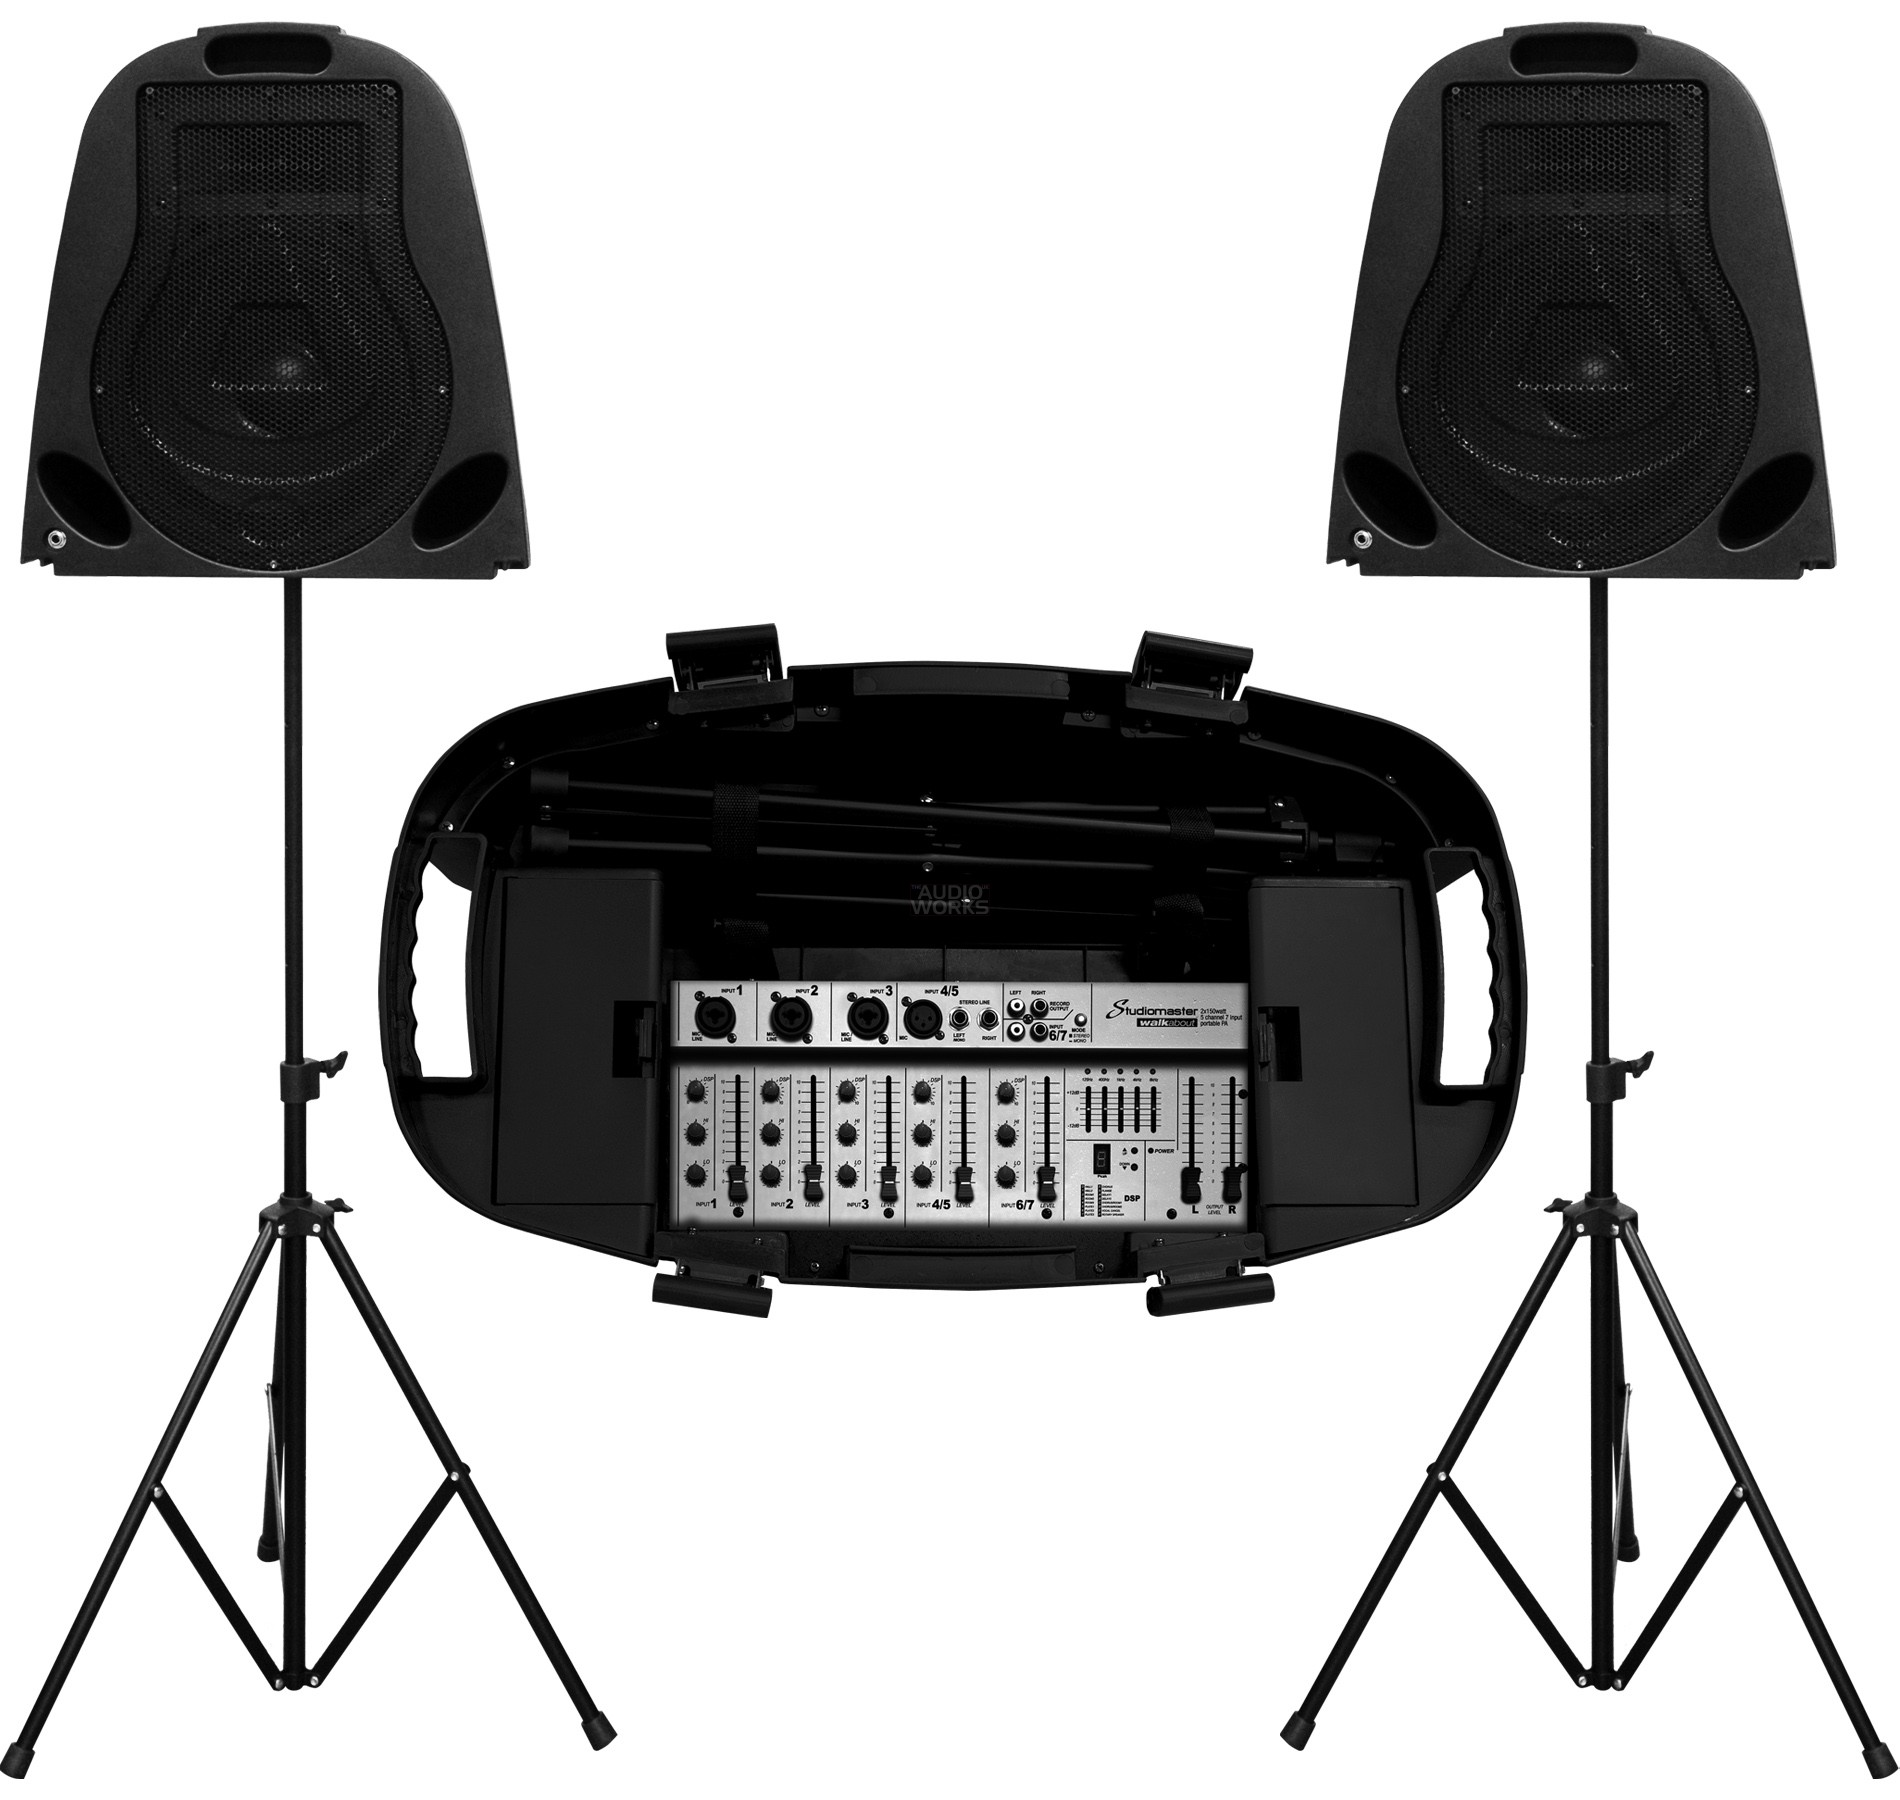 STUDIOMASTER WALKABOUT 300W PORTABLE ACTIVE PA SYSTEM